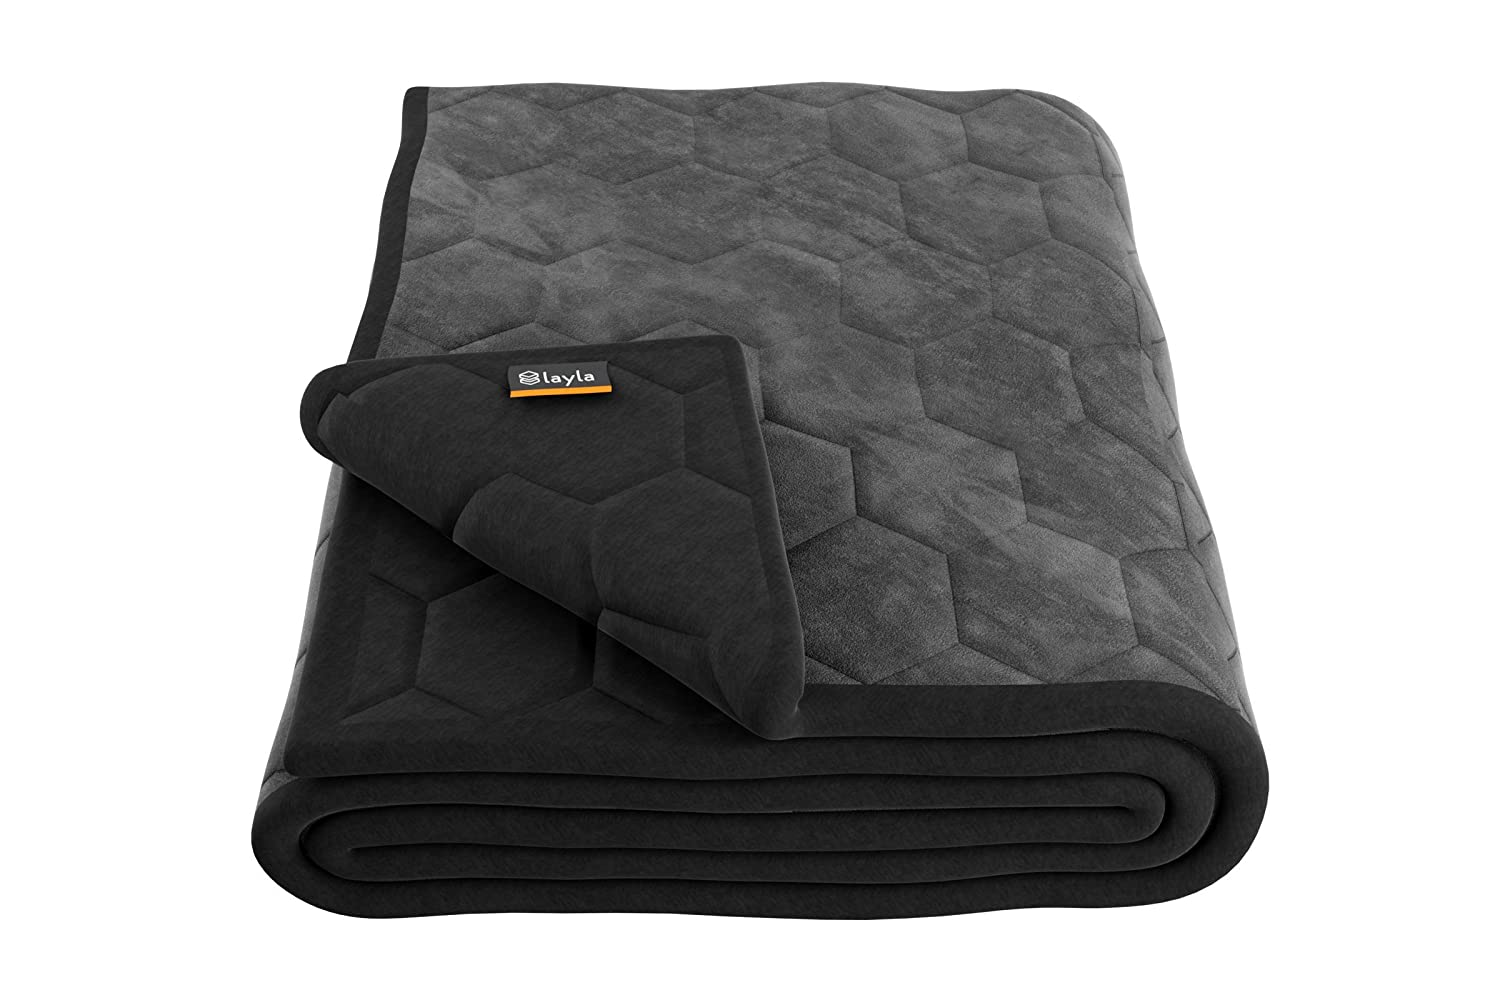 Layla Weighted Blanket with Fleecy Top Layer and 300 Thread-Count 100% Cotton Bottom Layer (King) sleep blankets Sleep blankets review – benefits of sleeping with weighted blankets 71kpF1Fu AL